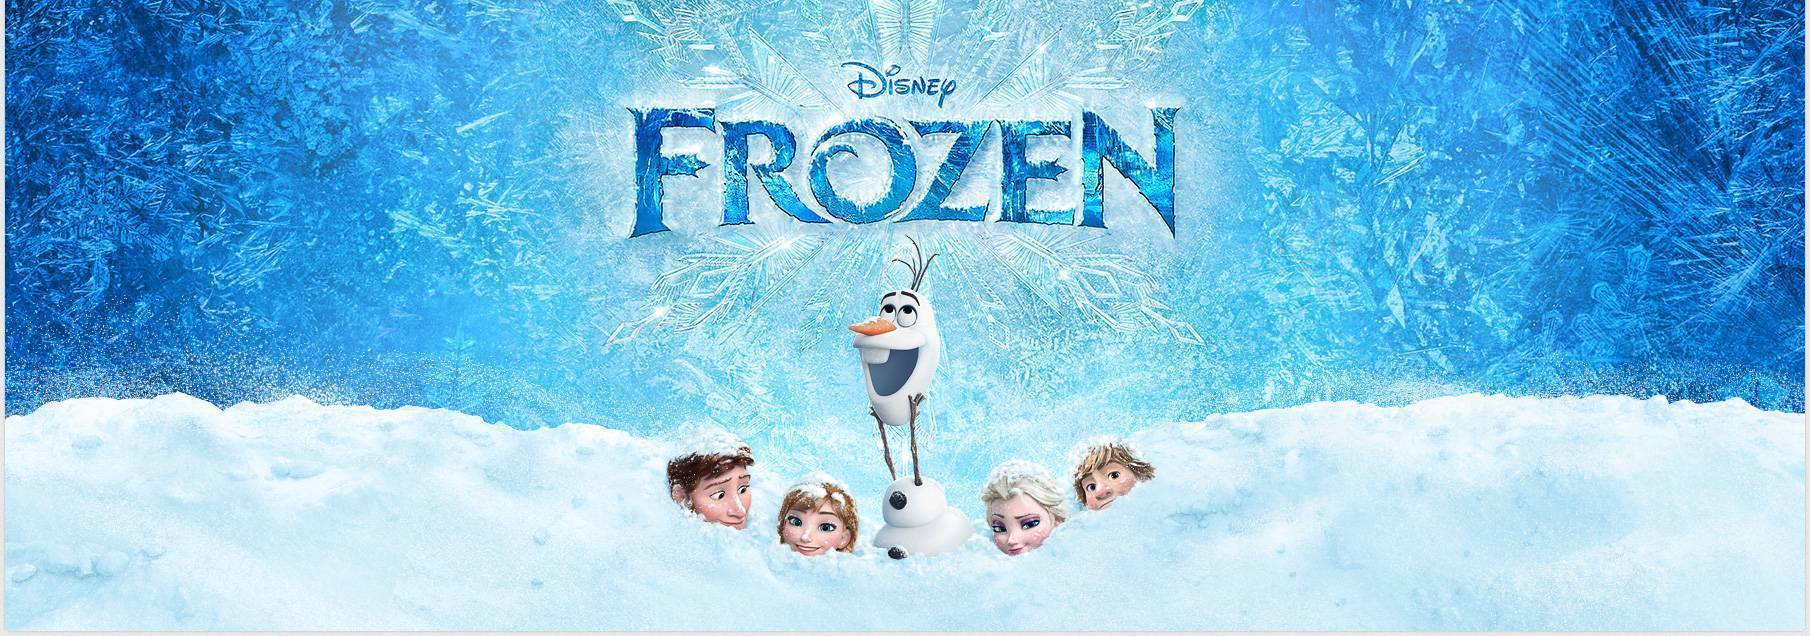 frozen-movie-facebook-background-wallpaper - UzerFriendly